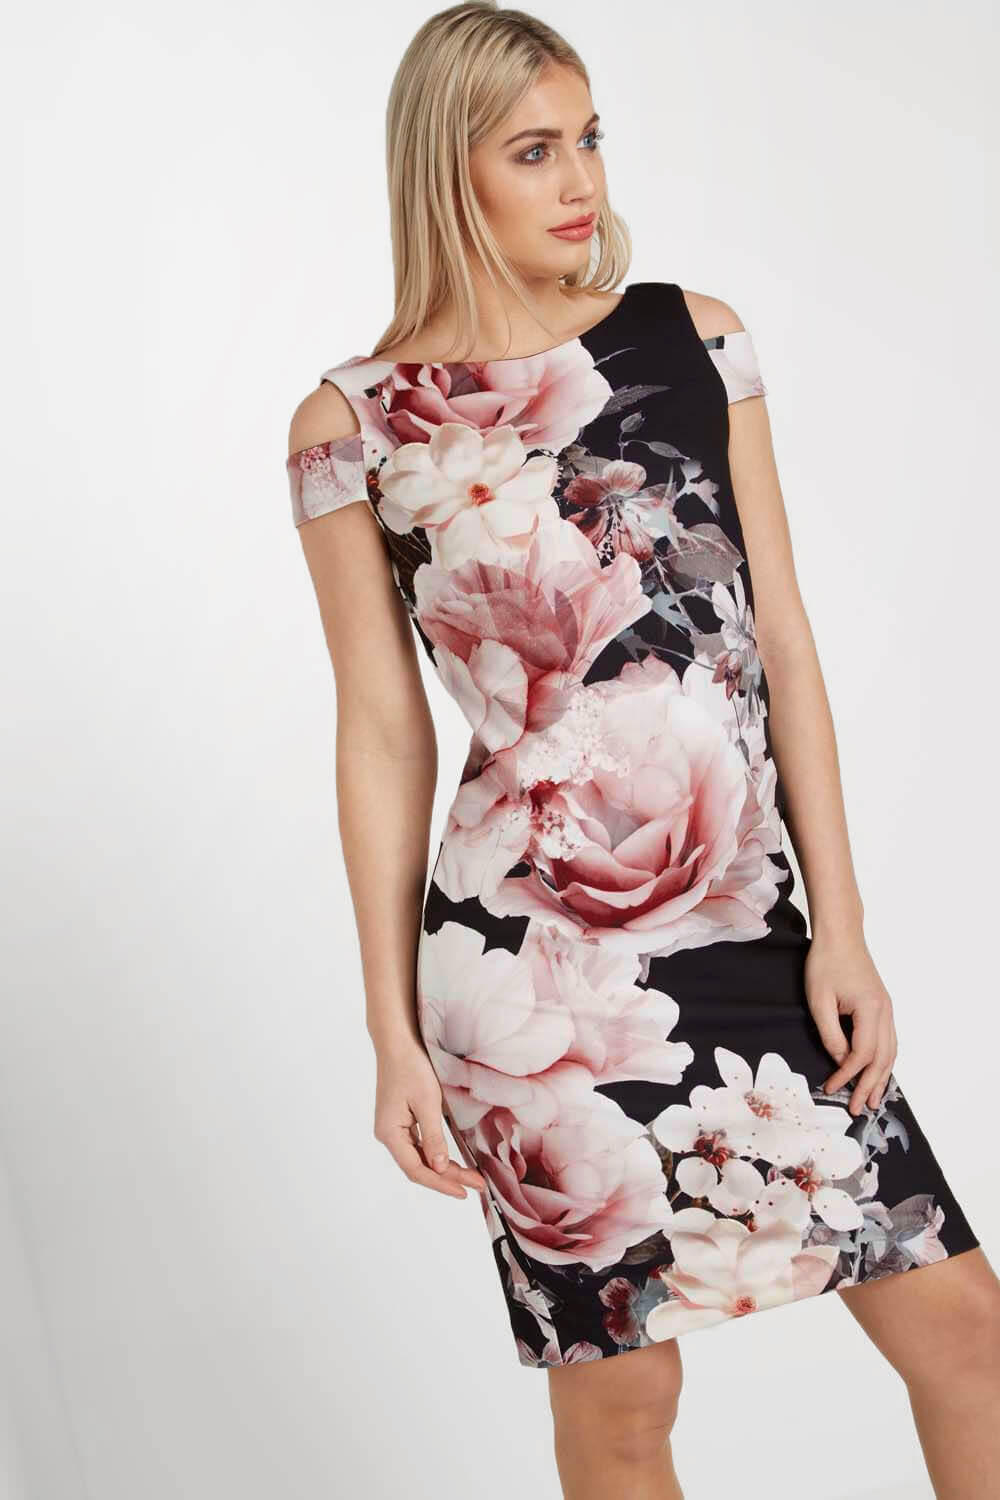 Roman-Originals-Women-039-s-Black-Floral-Print-Scuba-Dress-Sizes-10-20 thumbnail 8